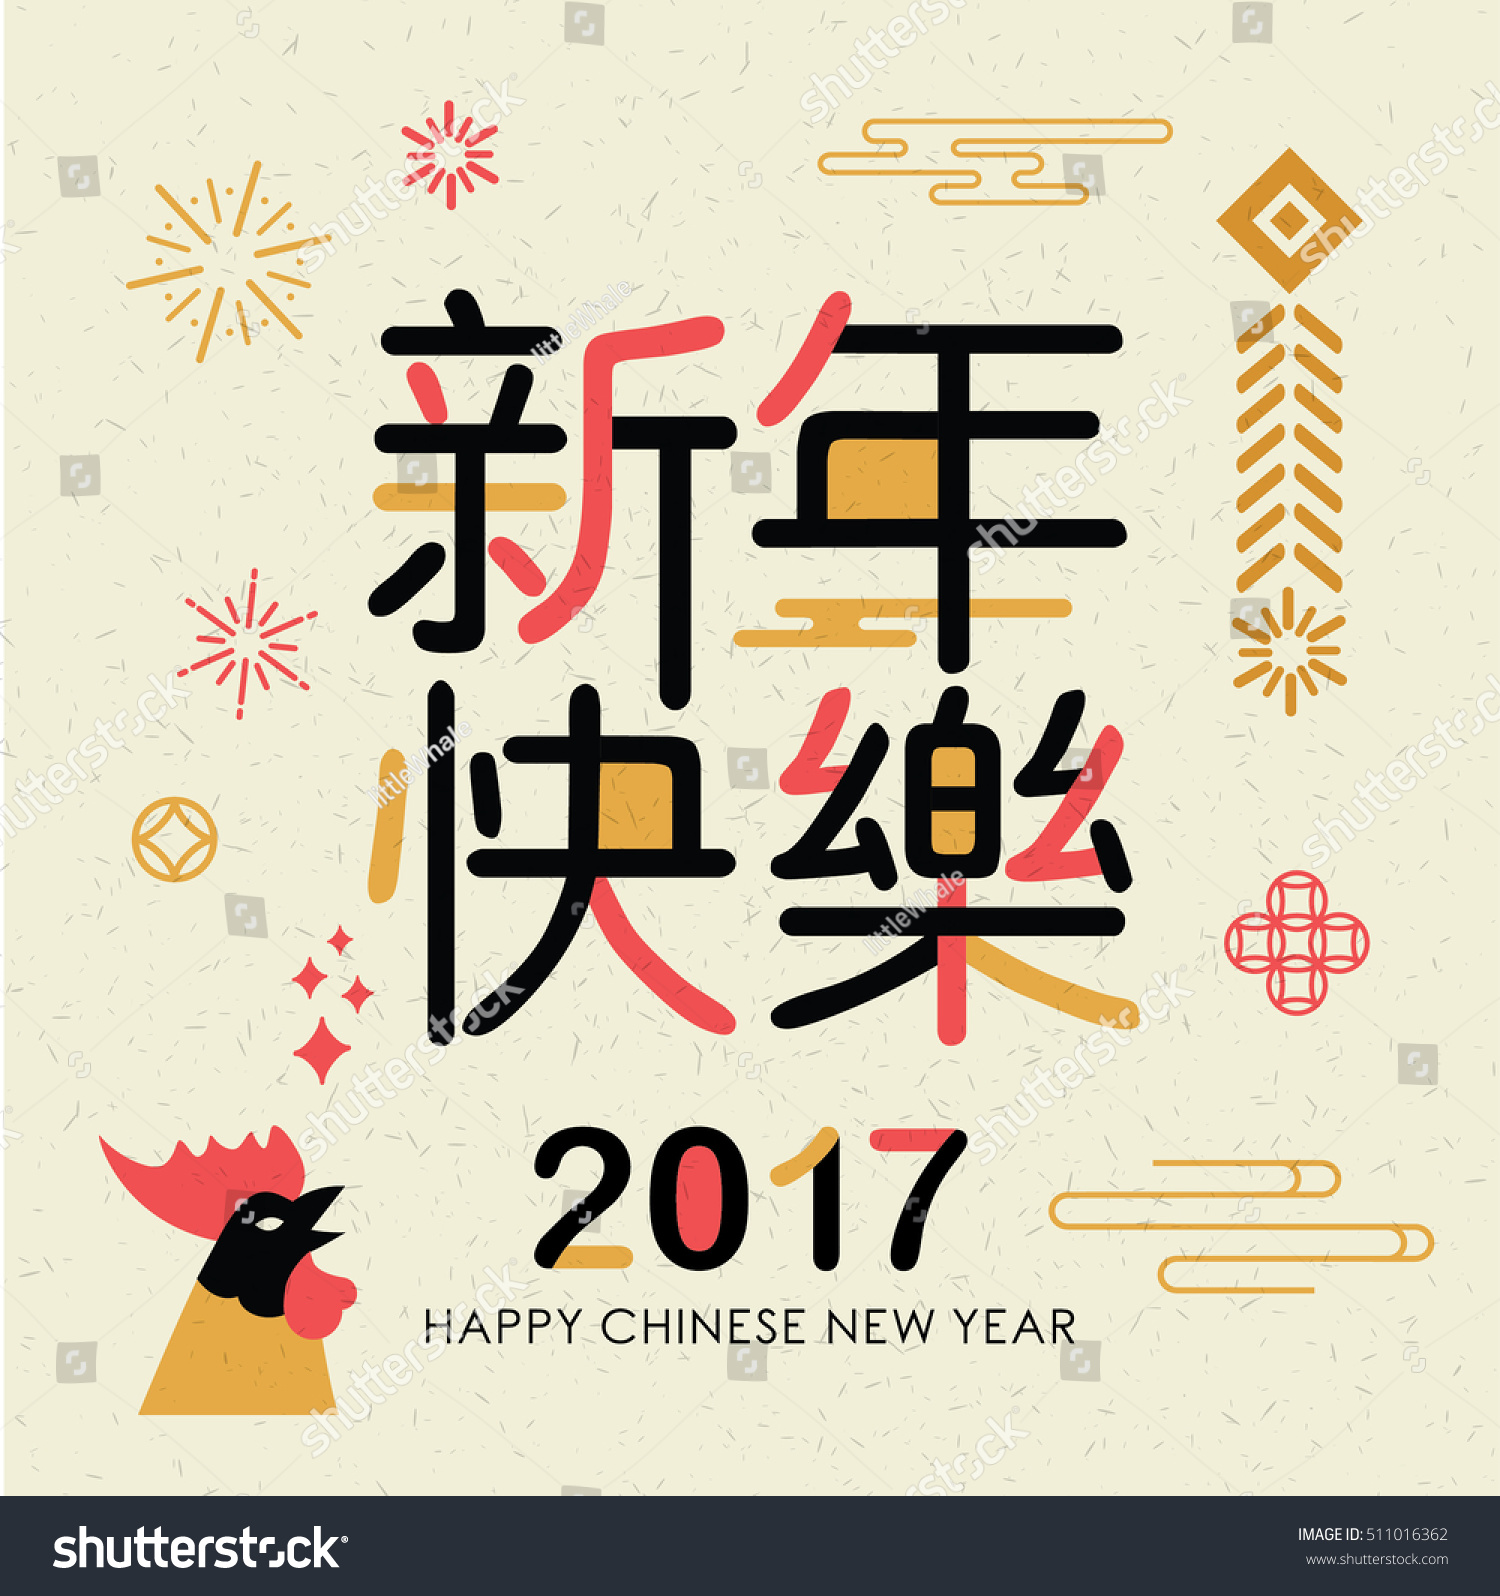 2017 chinese new year card year stock vector 511016362 shutterstock 2017 chinese new year card year of the rooster big chinese wording translation kristyandbryce Choice Image